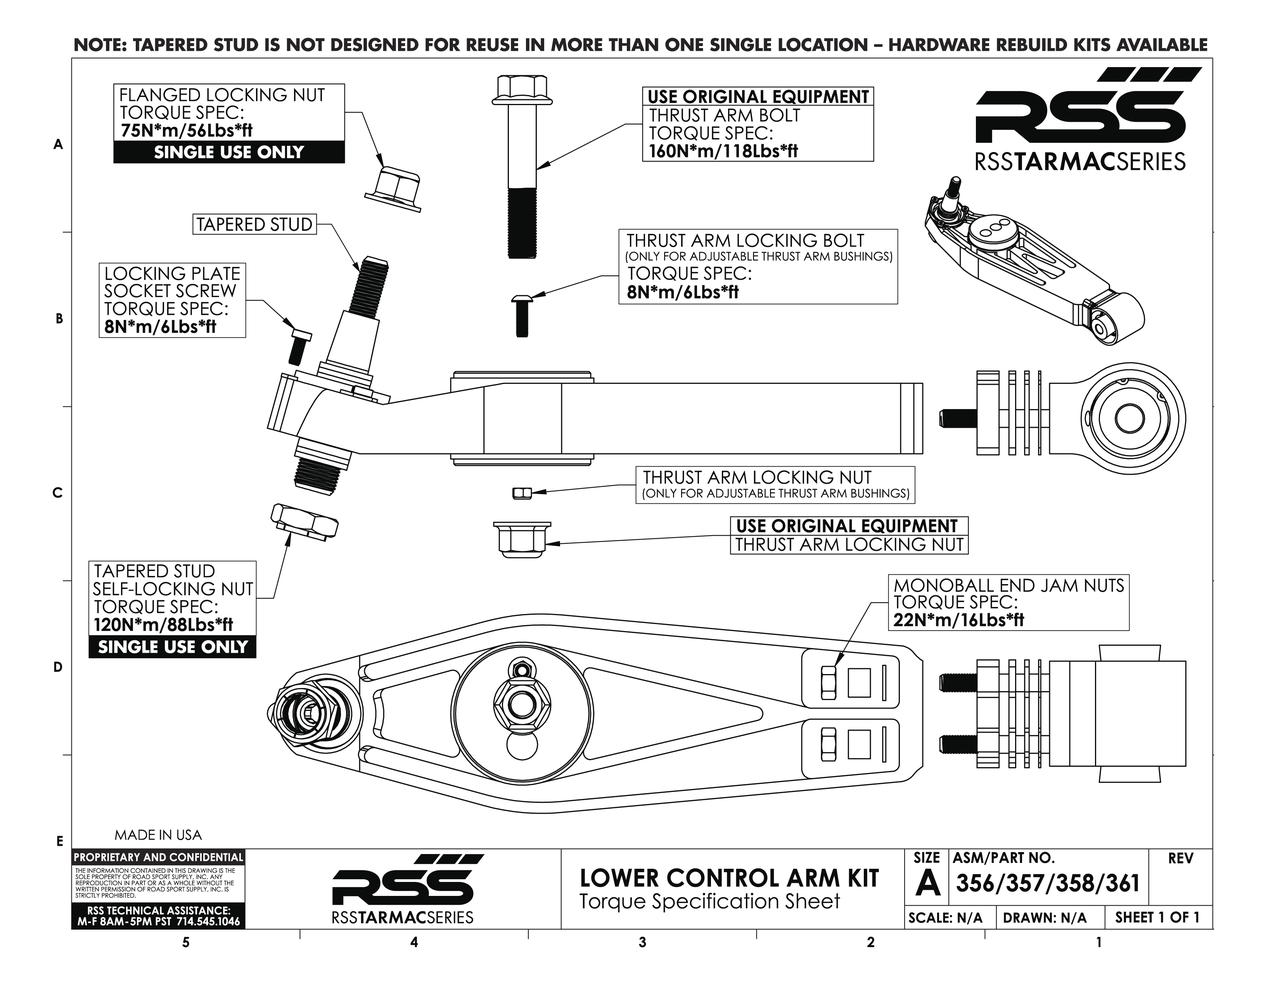 RSS Part # 3-256 Inner Spherical Bearing (Mono-ball) End Kit: Set of 2. Fits 991 GT3 OE Front Control Arms, 981 GT4 Front and Rear Control Arms, Fits 986, 987, 996, 997 with GT3/RS OE Front or Rear Split Control Arms, Fits any RSS Tarmac Series Lower Control Arm or replaces any OE Porsche Split Arm Inner Bushing. Provides a Bolt On Mono-Ball Performance Solution replacing rubber mounted OE inner mono-balls. RSS Longer studs allow for more negative camber adjustment / gain vs. OE inner bushing. For camber shim kits see RSS Part # 308.